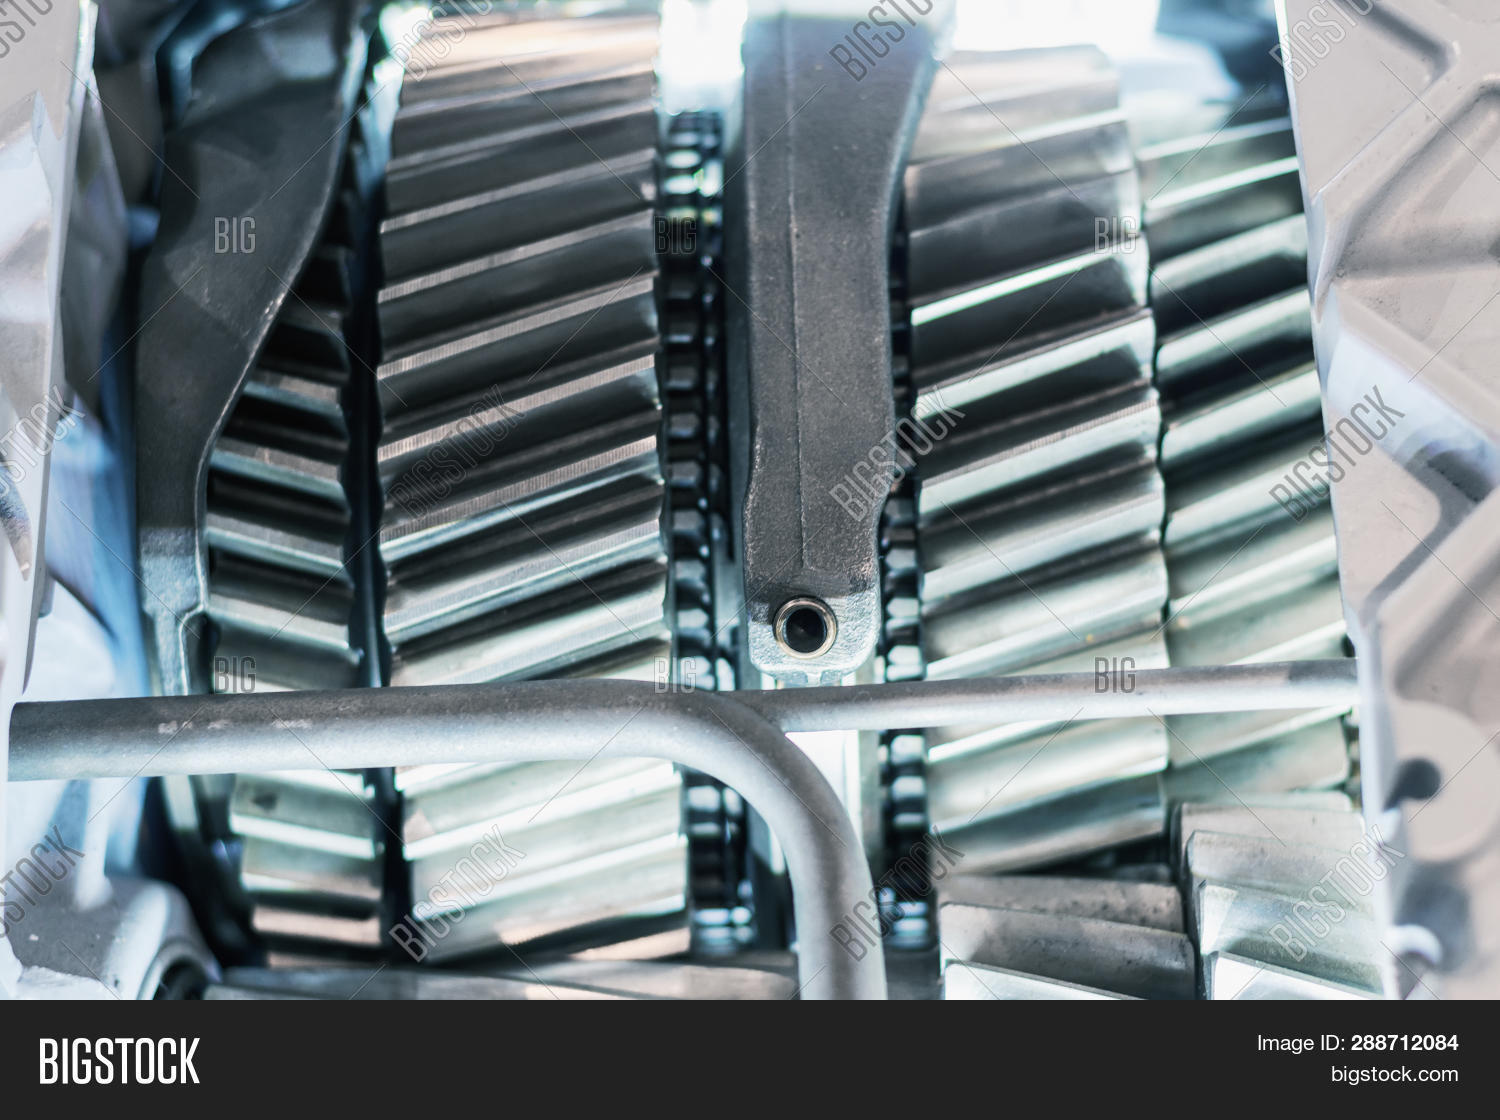 Inner Structure Image & Photo (Free Trial) | Bigstock